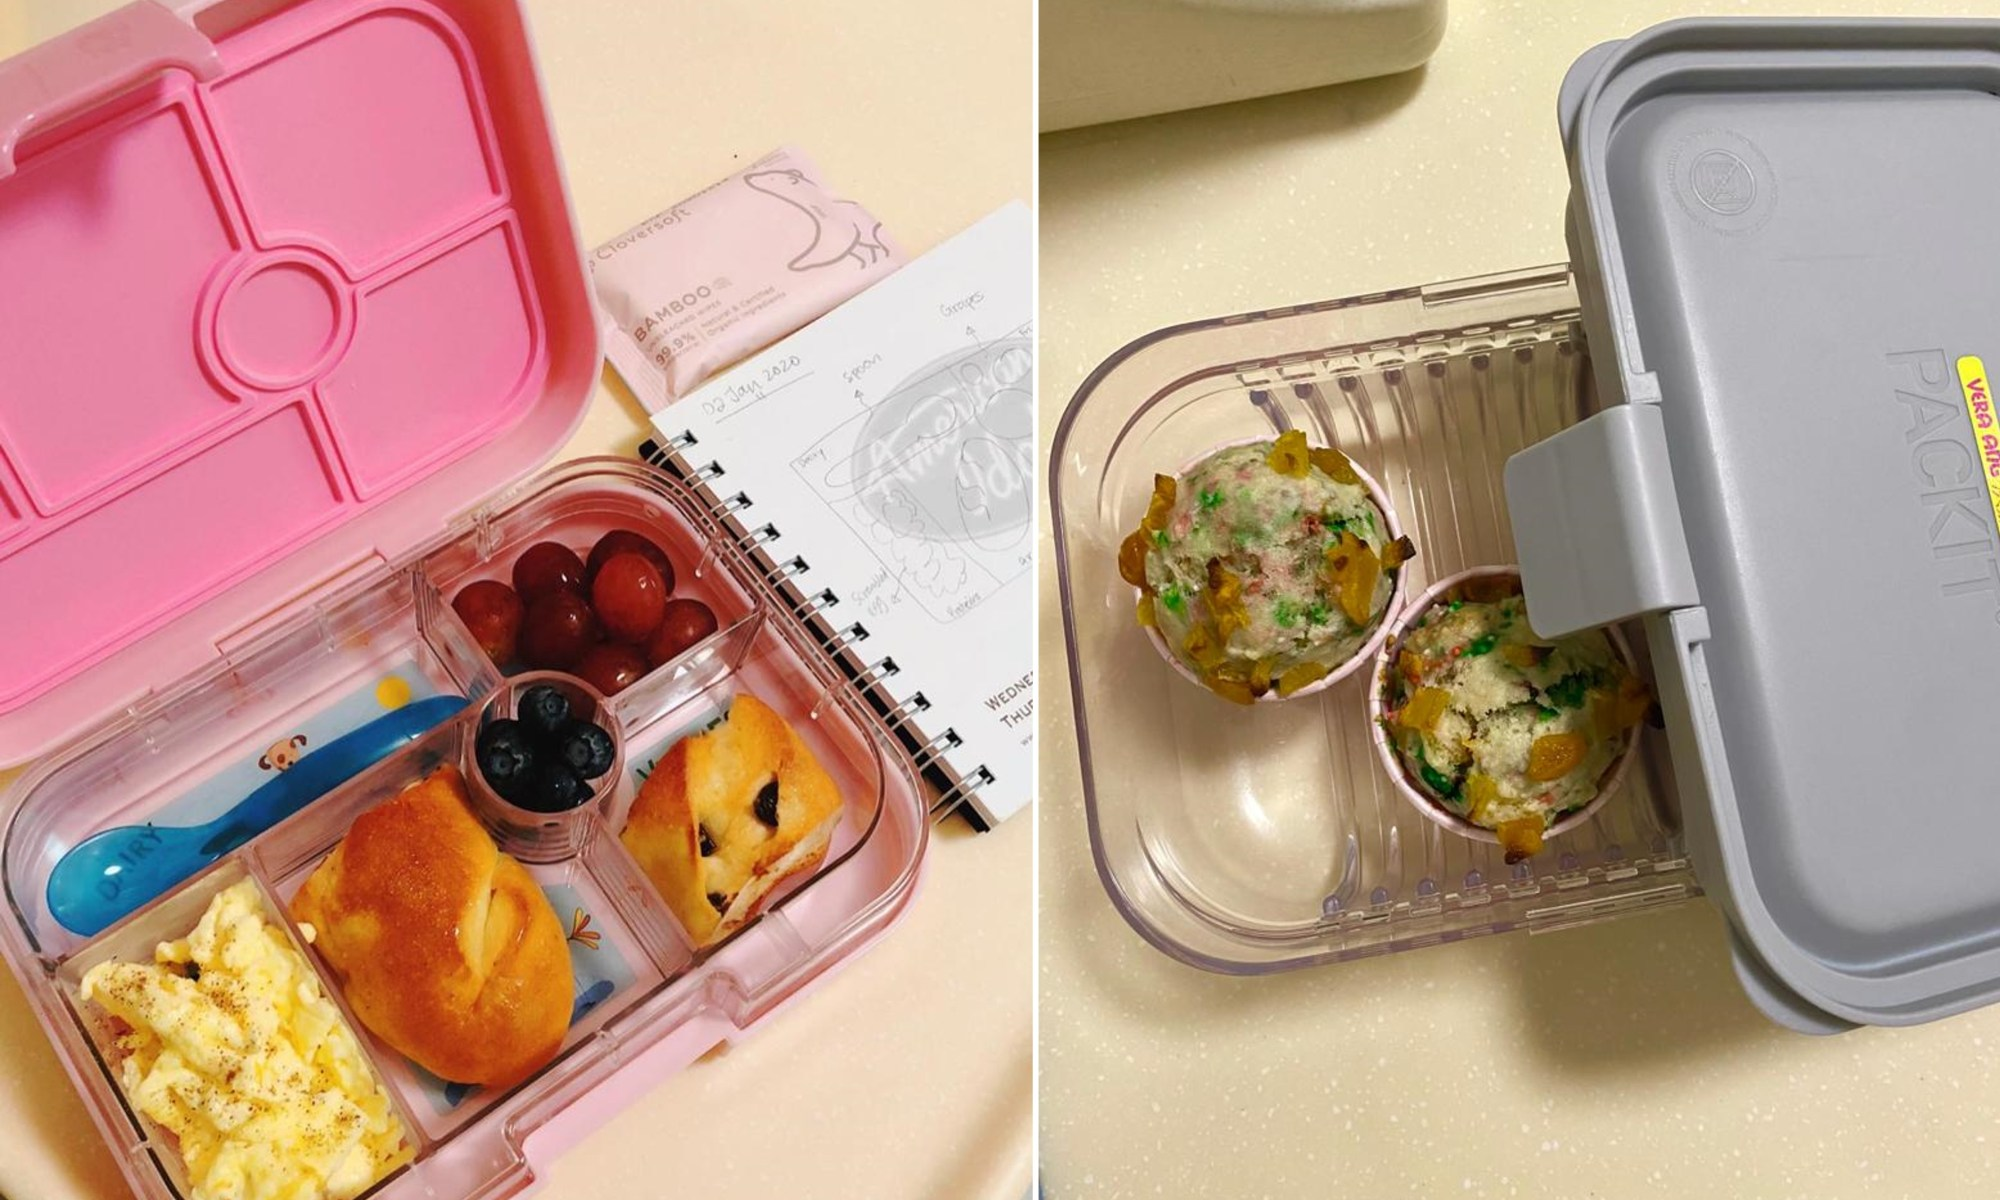 snack ideas and recess food primary school